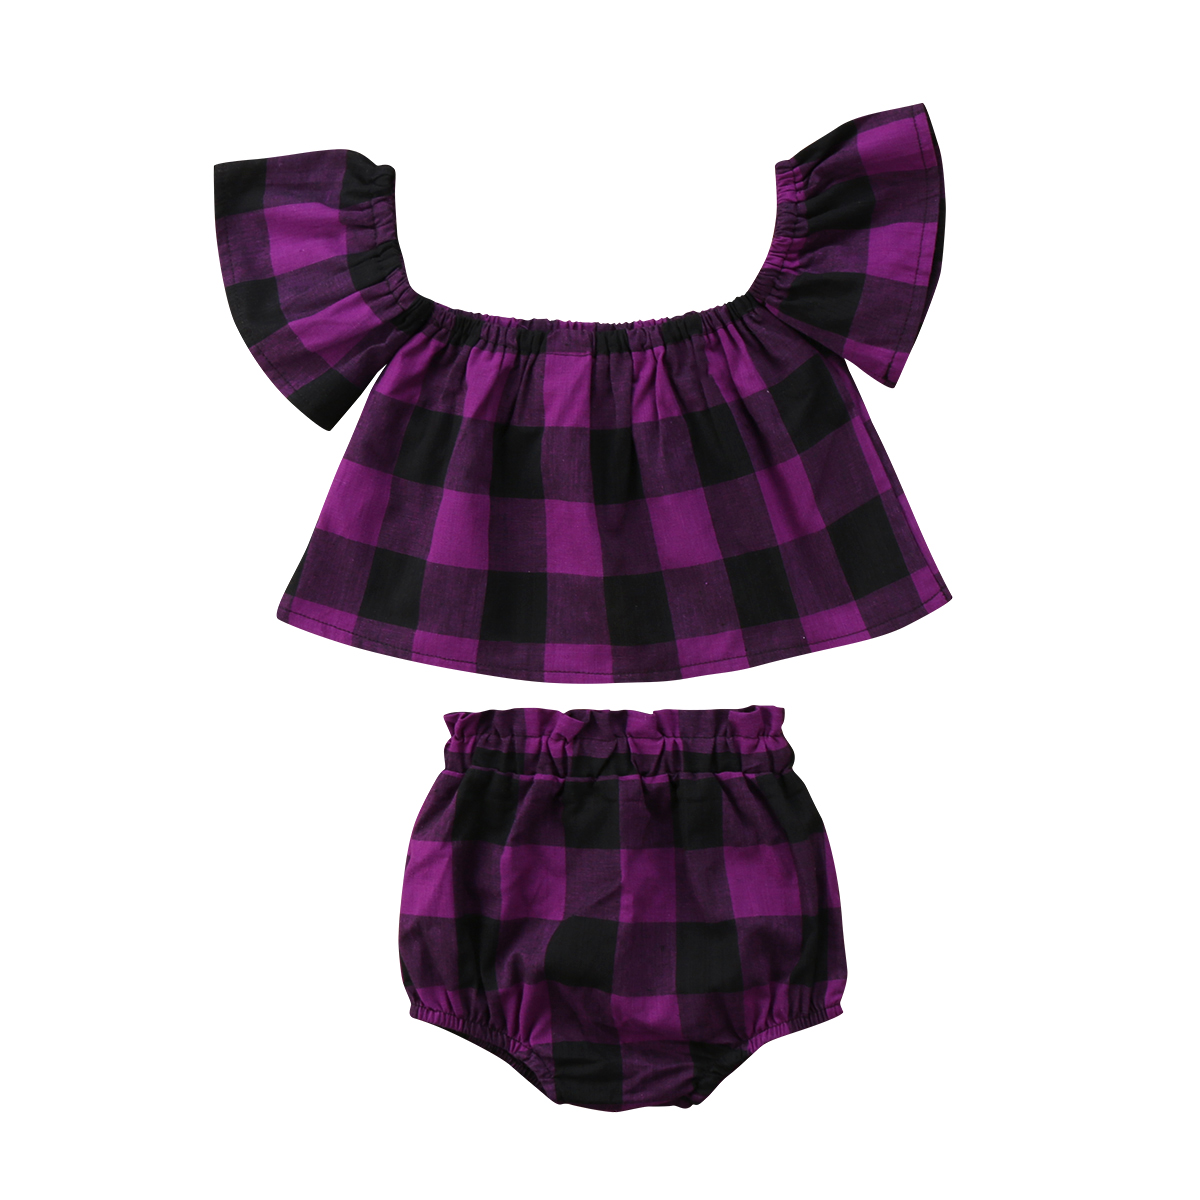 Newest Baby Girls Kids fashion clothes set purple plaids off shoulder T-shirt short Briefs pants Pudcoco Outfit summer suit 0-3Y